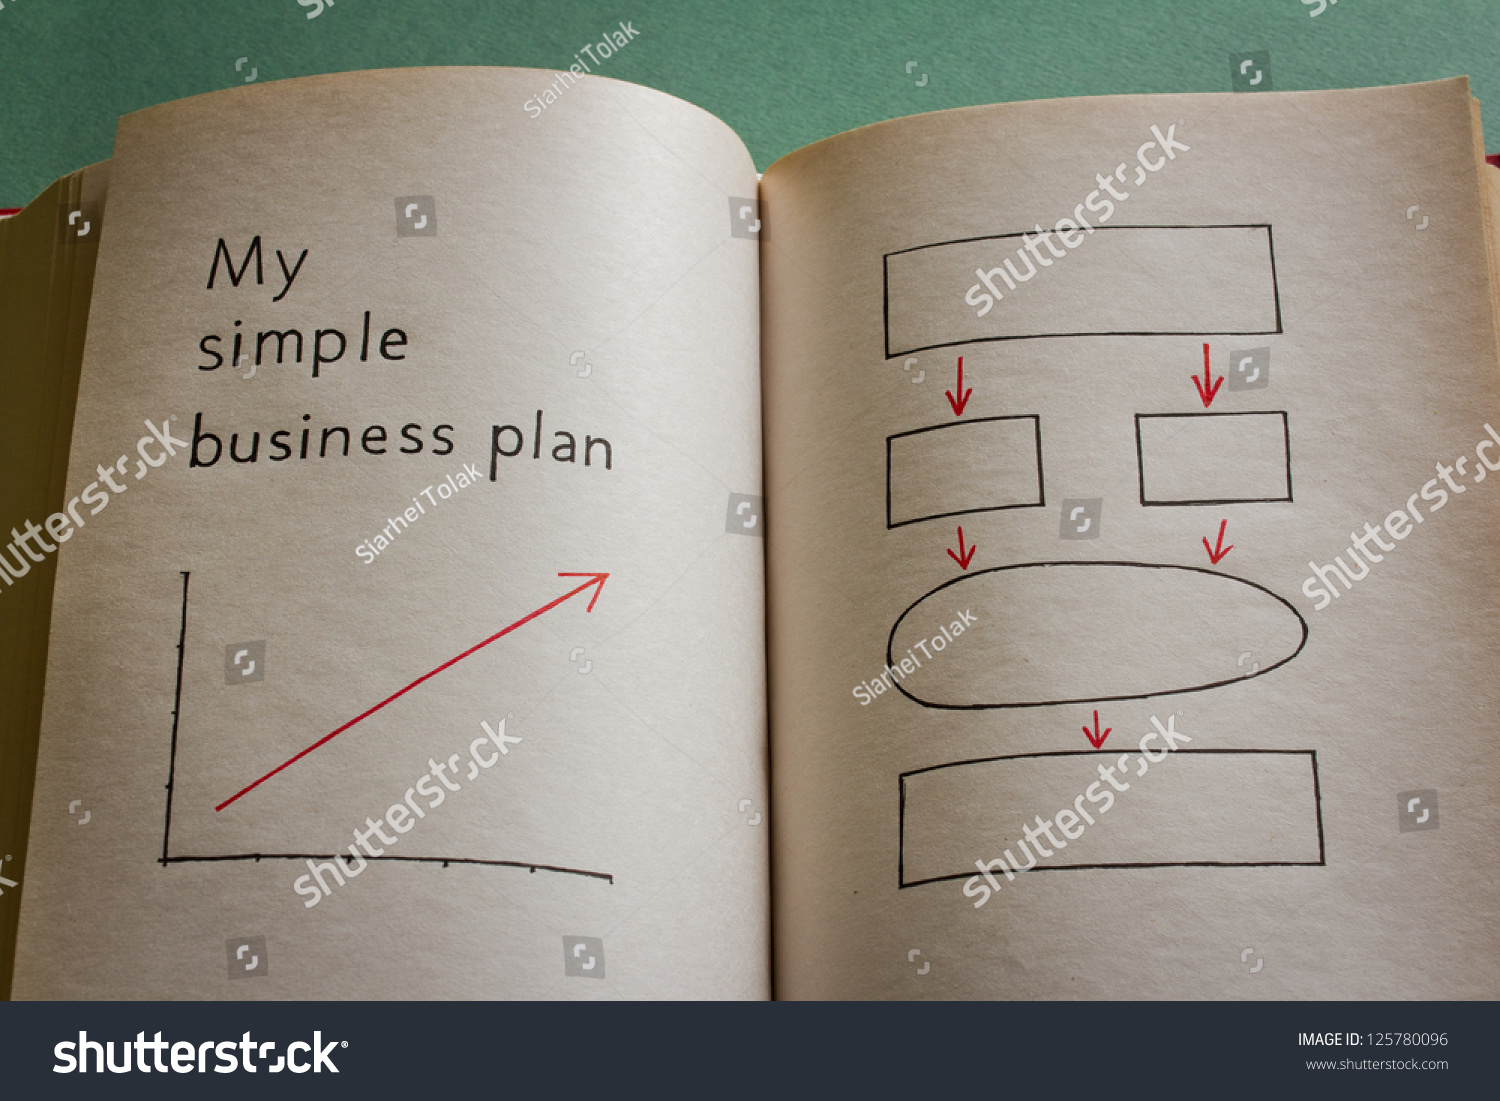 My Simple Business Plan In The Blank Book With Grow Graph